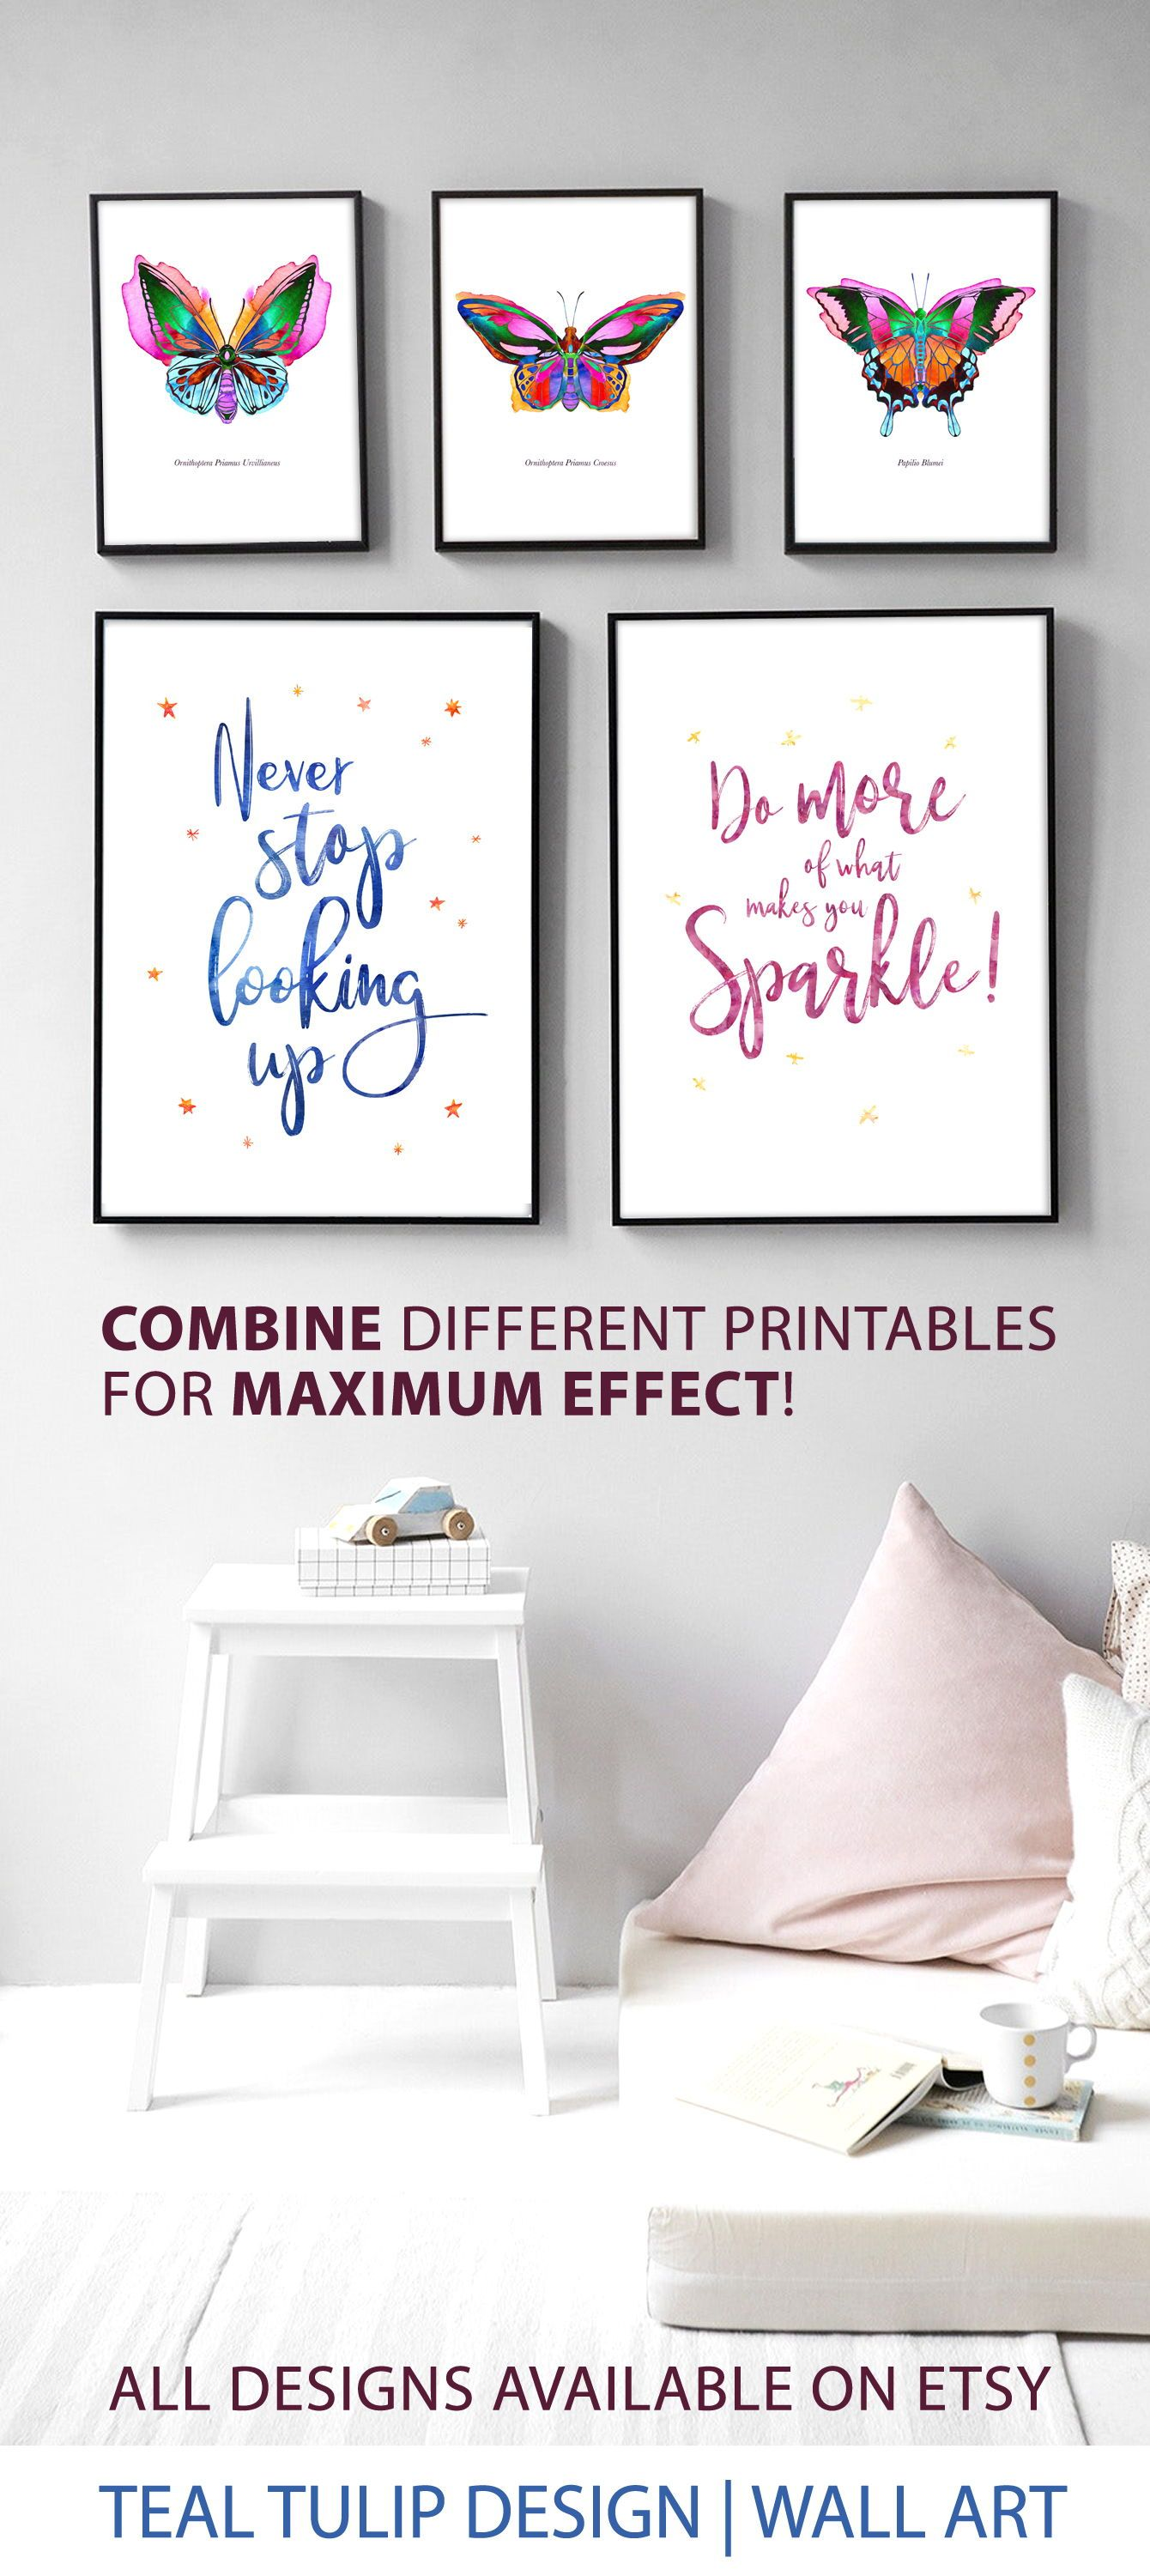 Pin Op All Things Printable Planners Adult Colouring Pages Digital Art Lifestyle And Mindset Etc